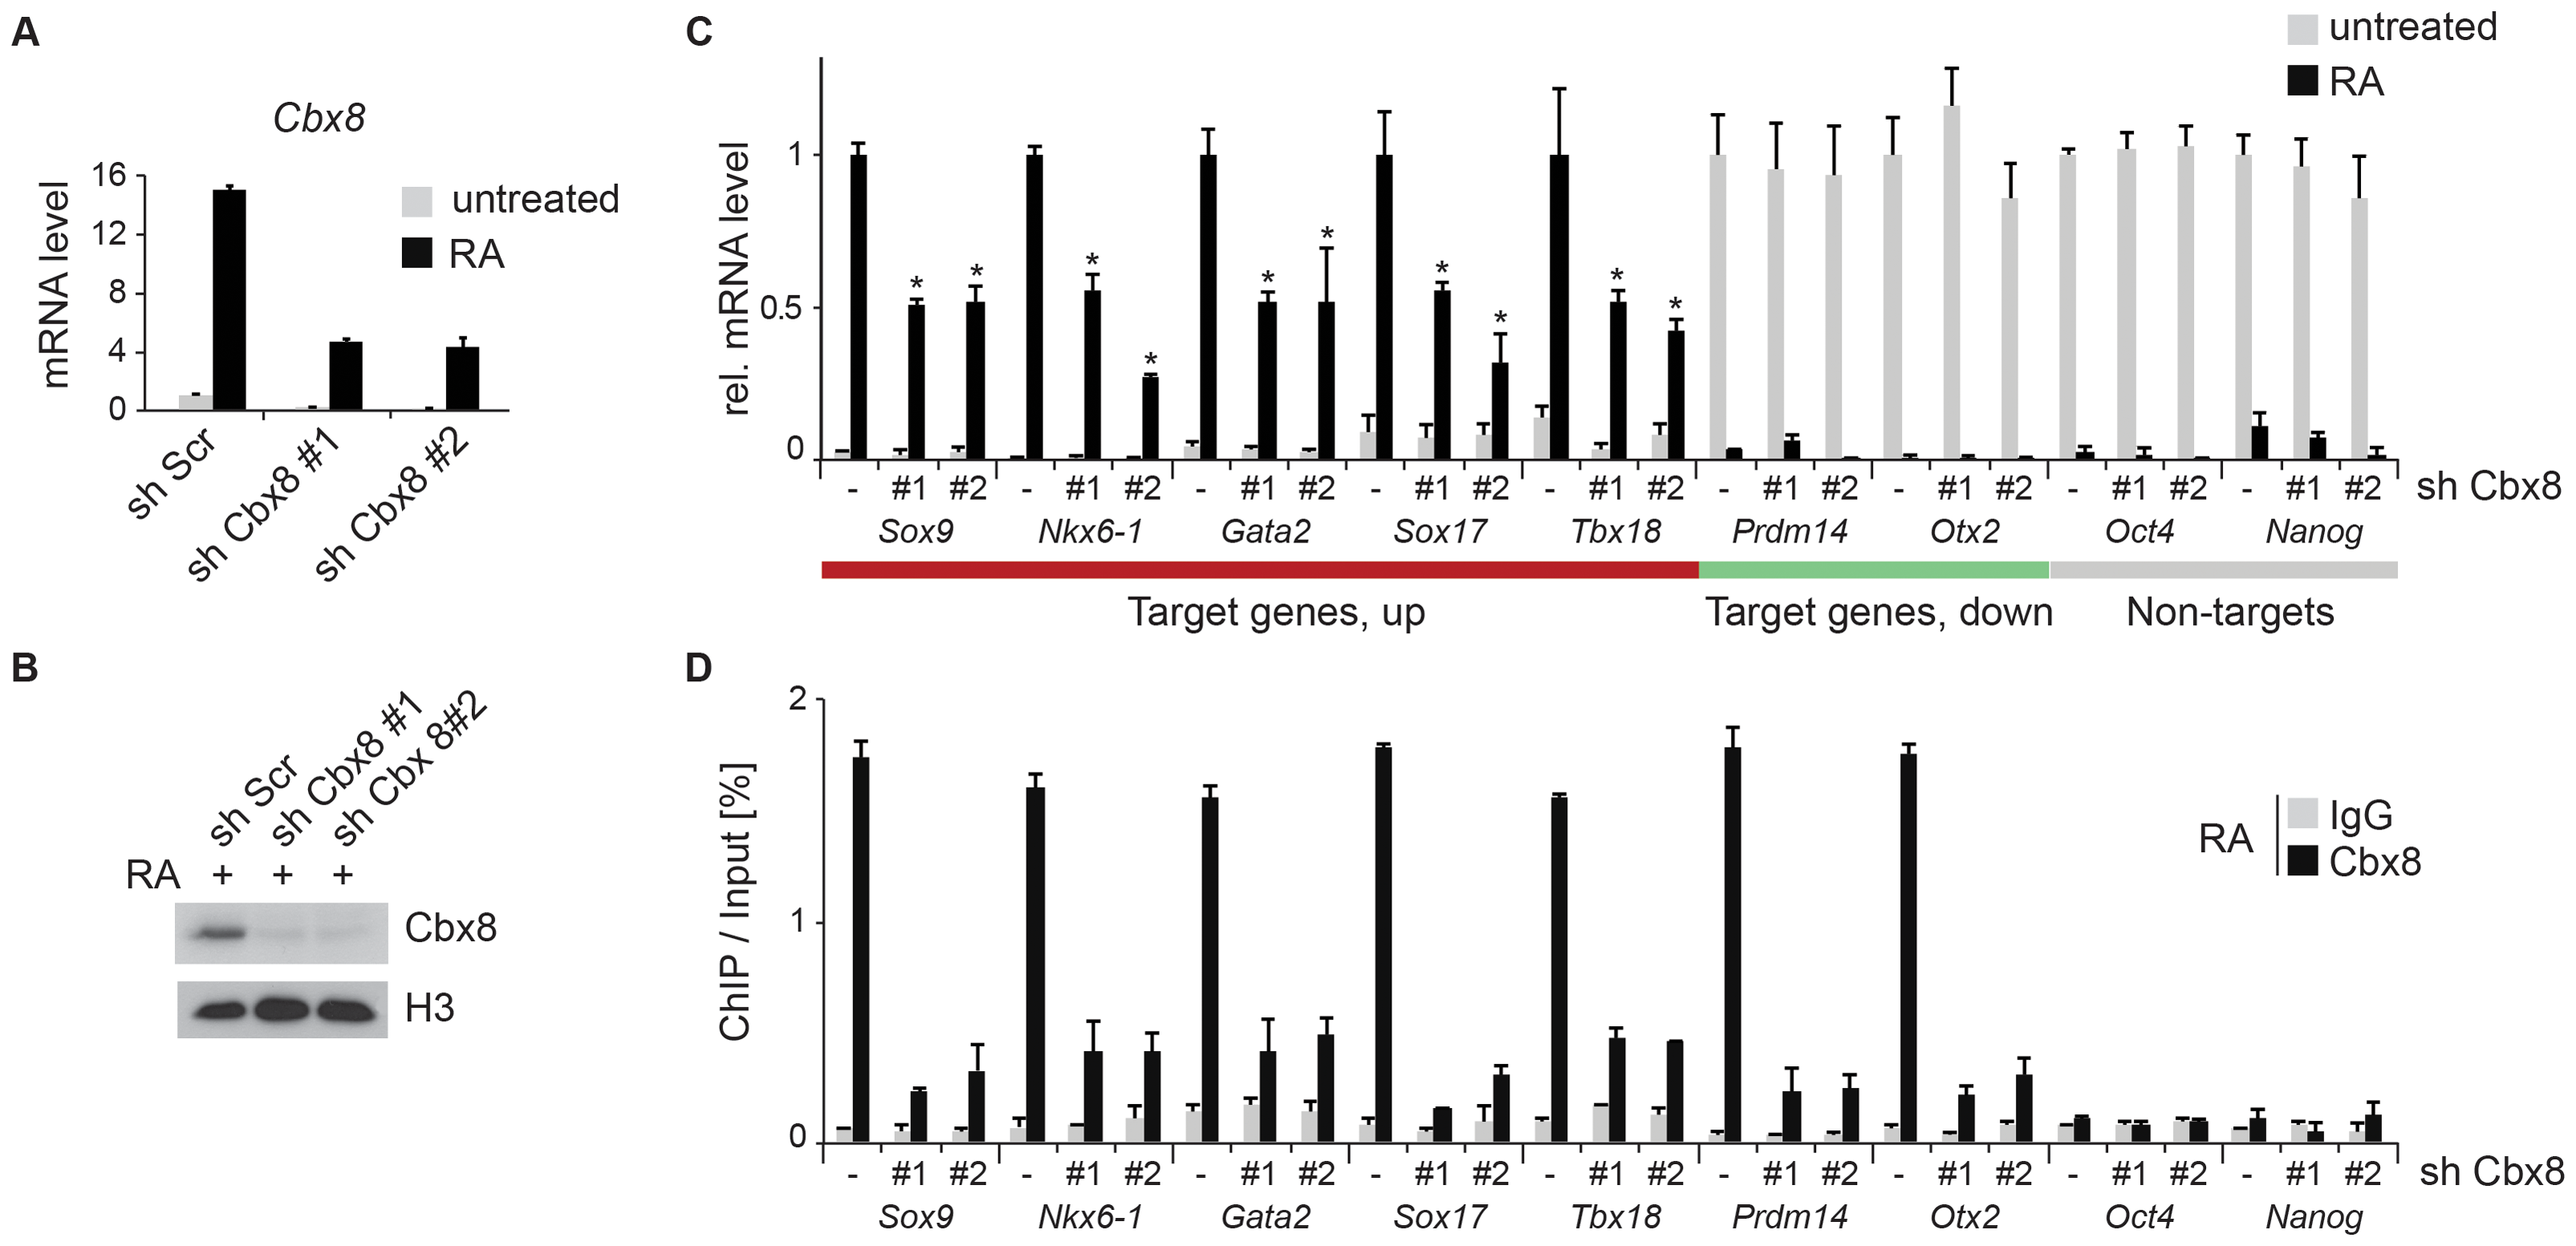 Knockdown of Cbx8 reduces transcription of activated target genes.